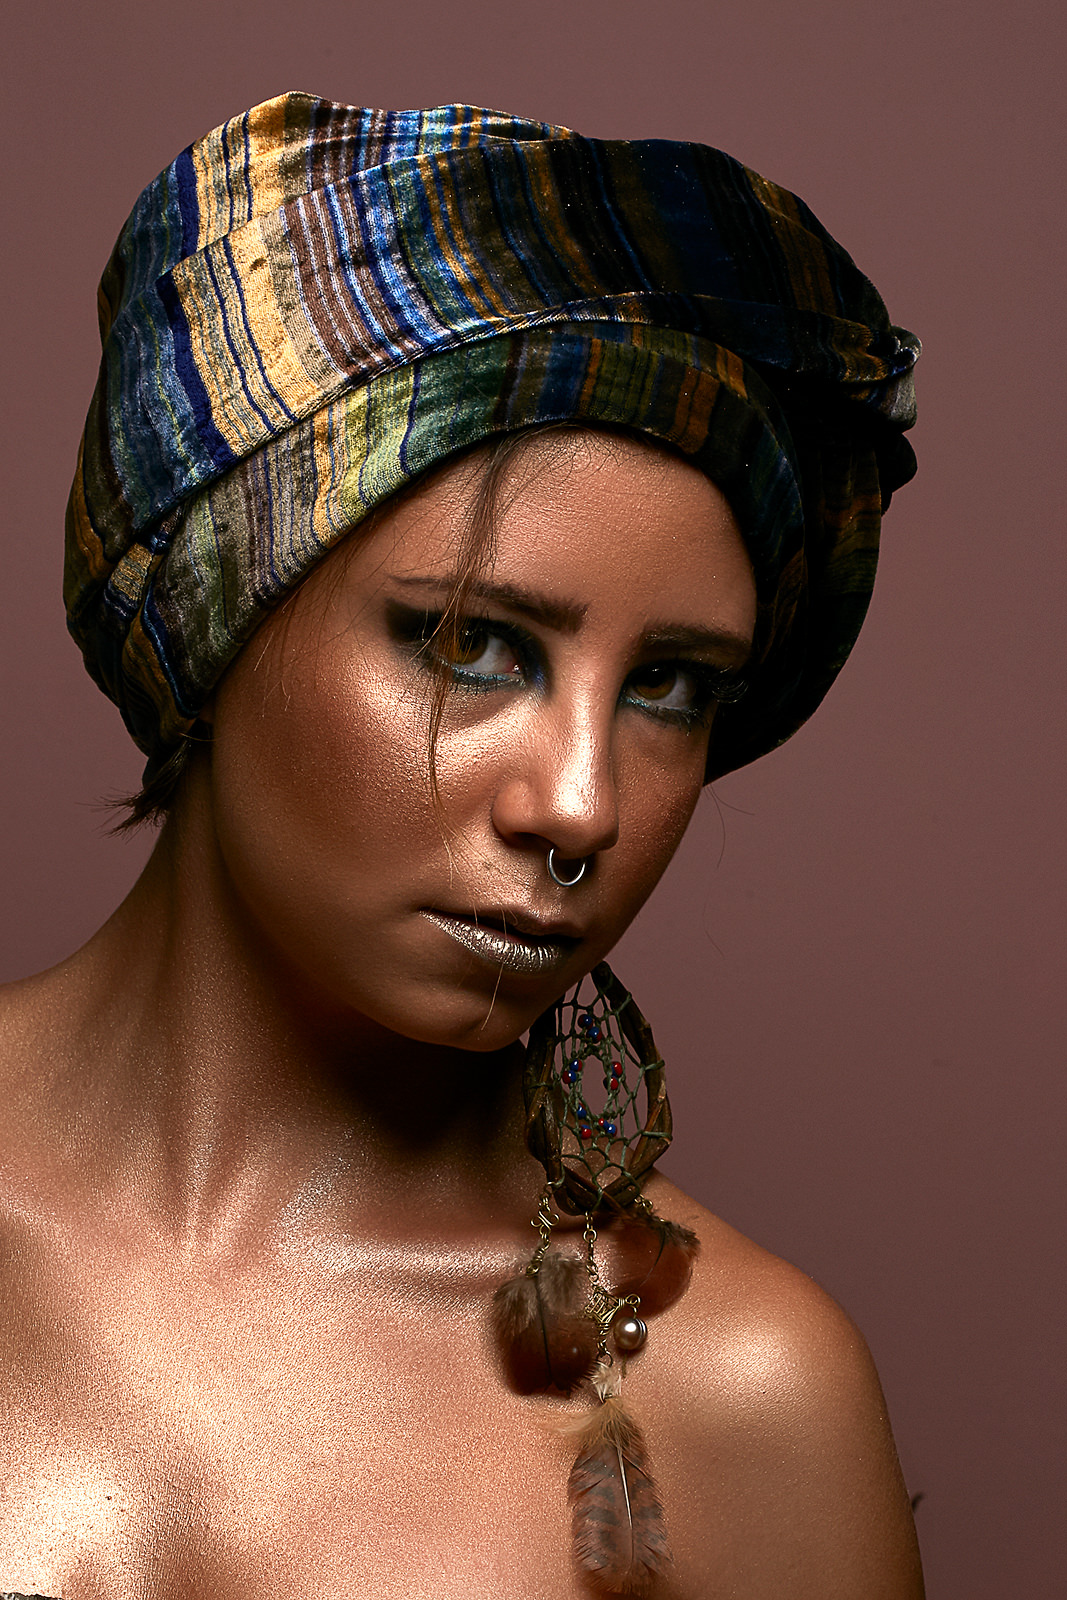 Marcos Valdés Beauty and fashion photographer